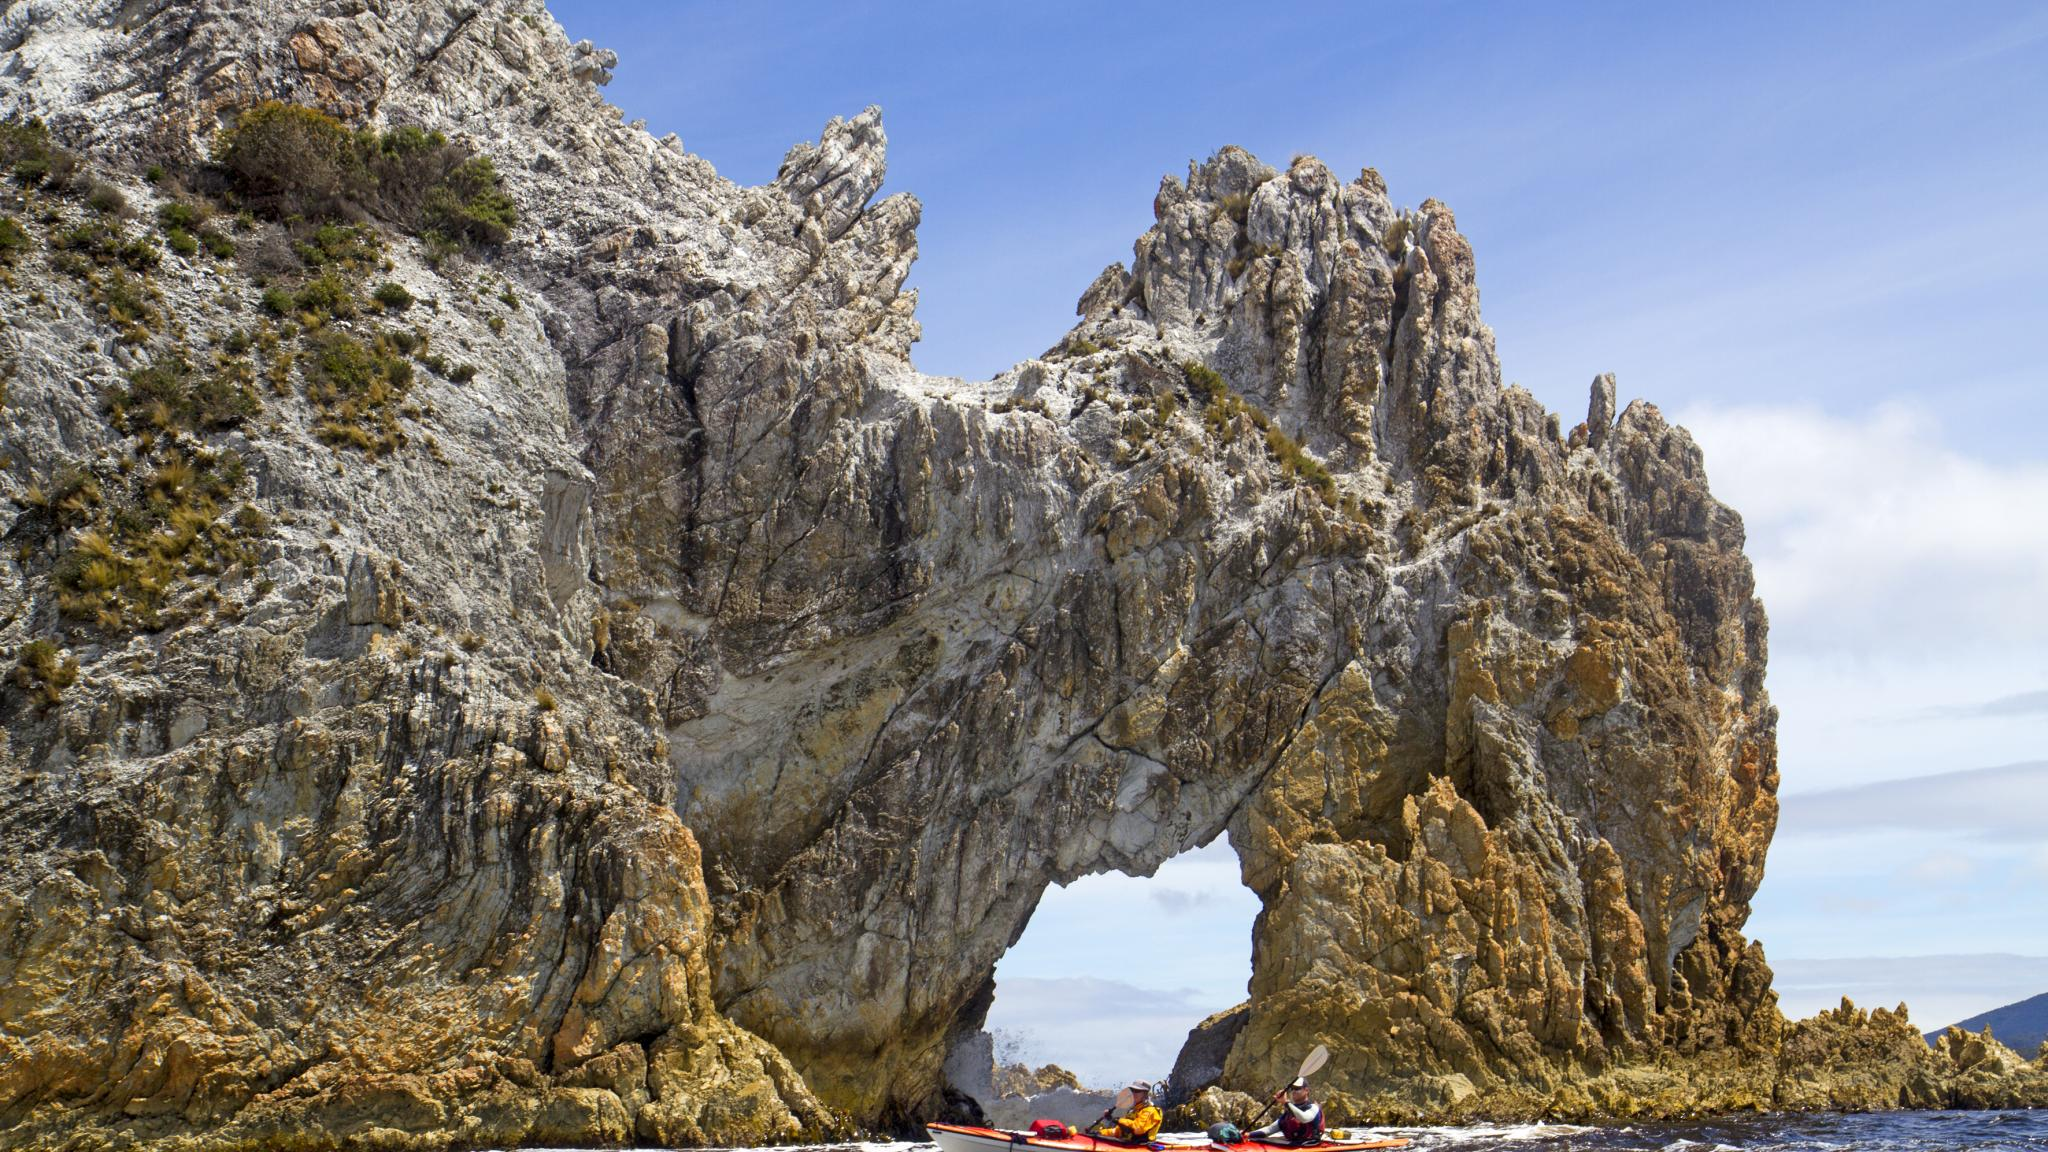 Roaring 40s Kayaking - Kayaking adventure tour at Wallaby Arch, Port Davey